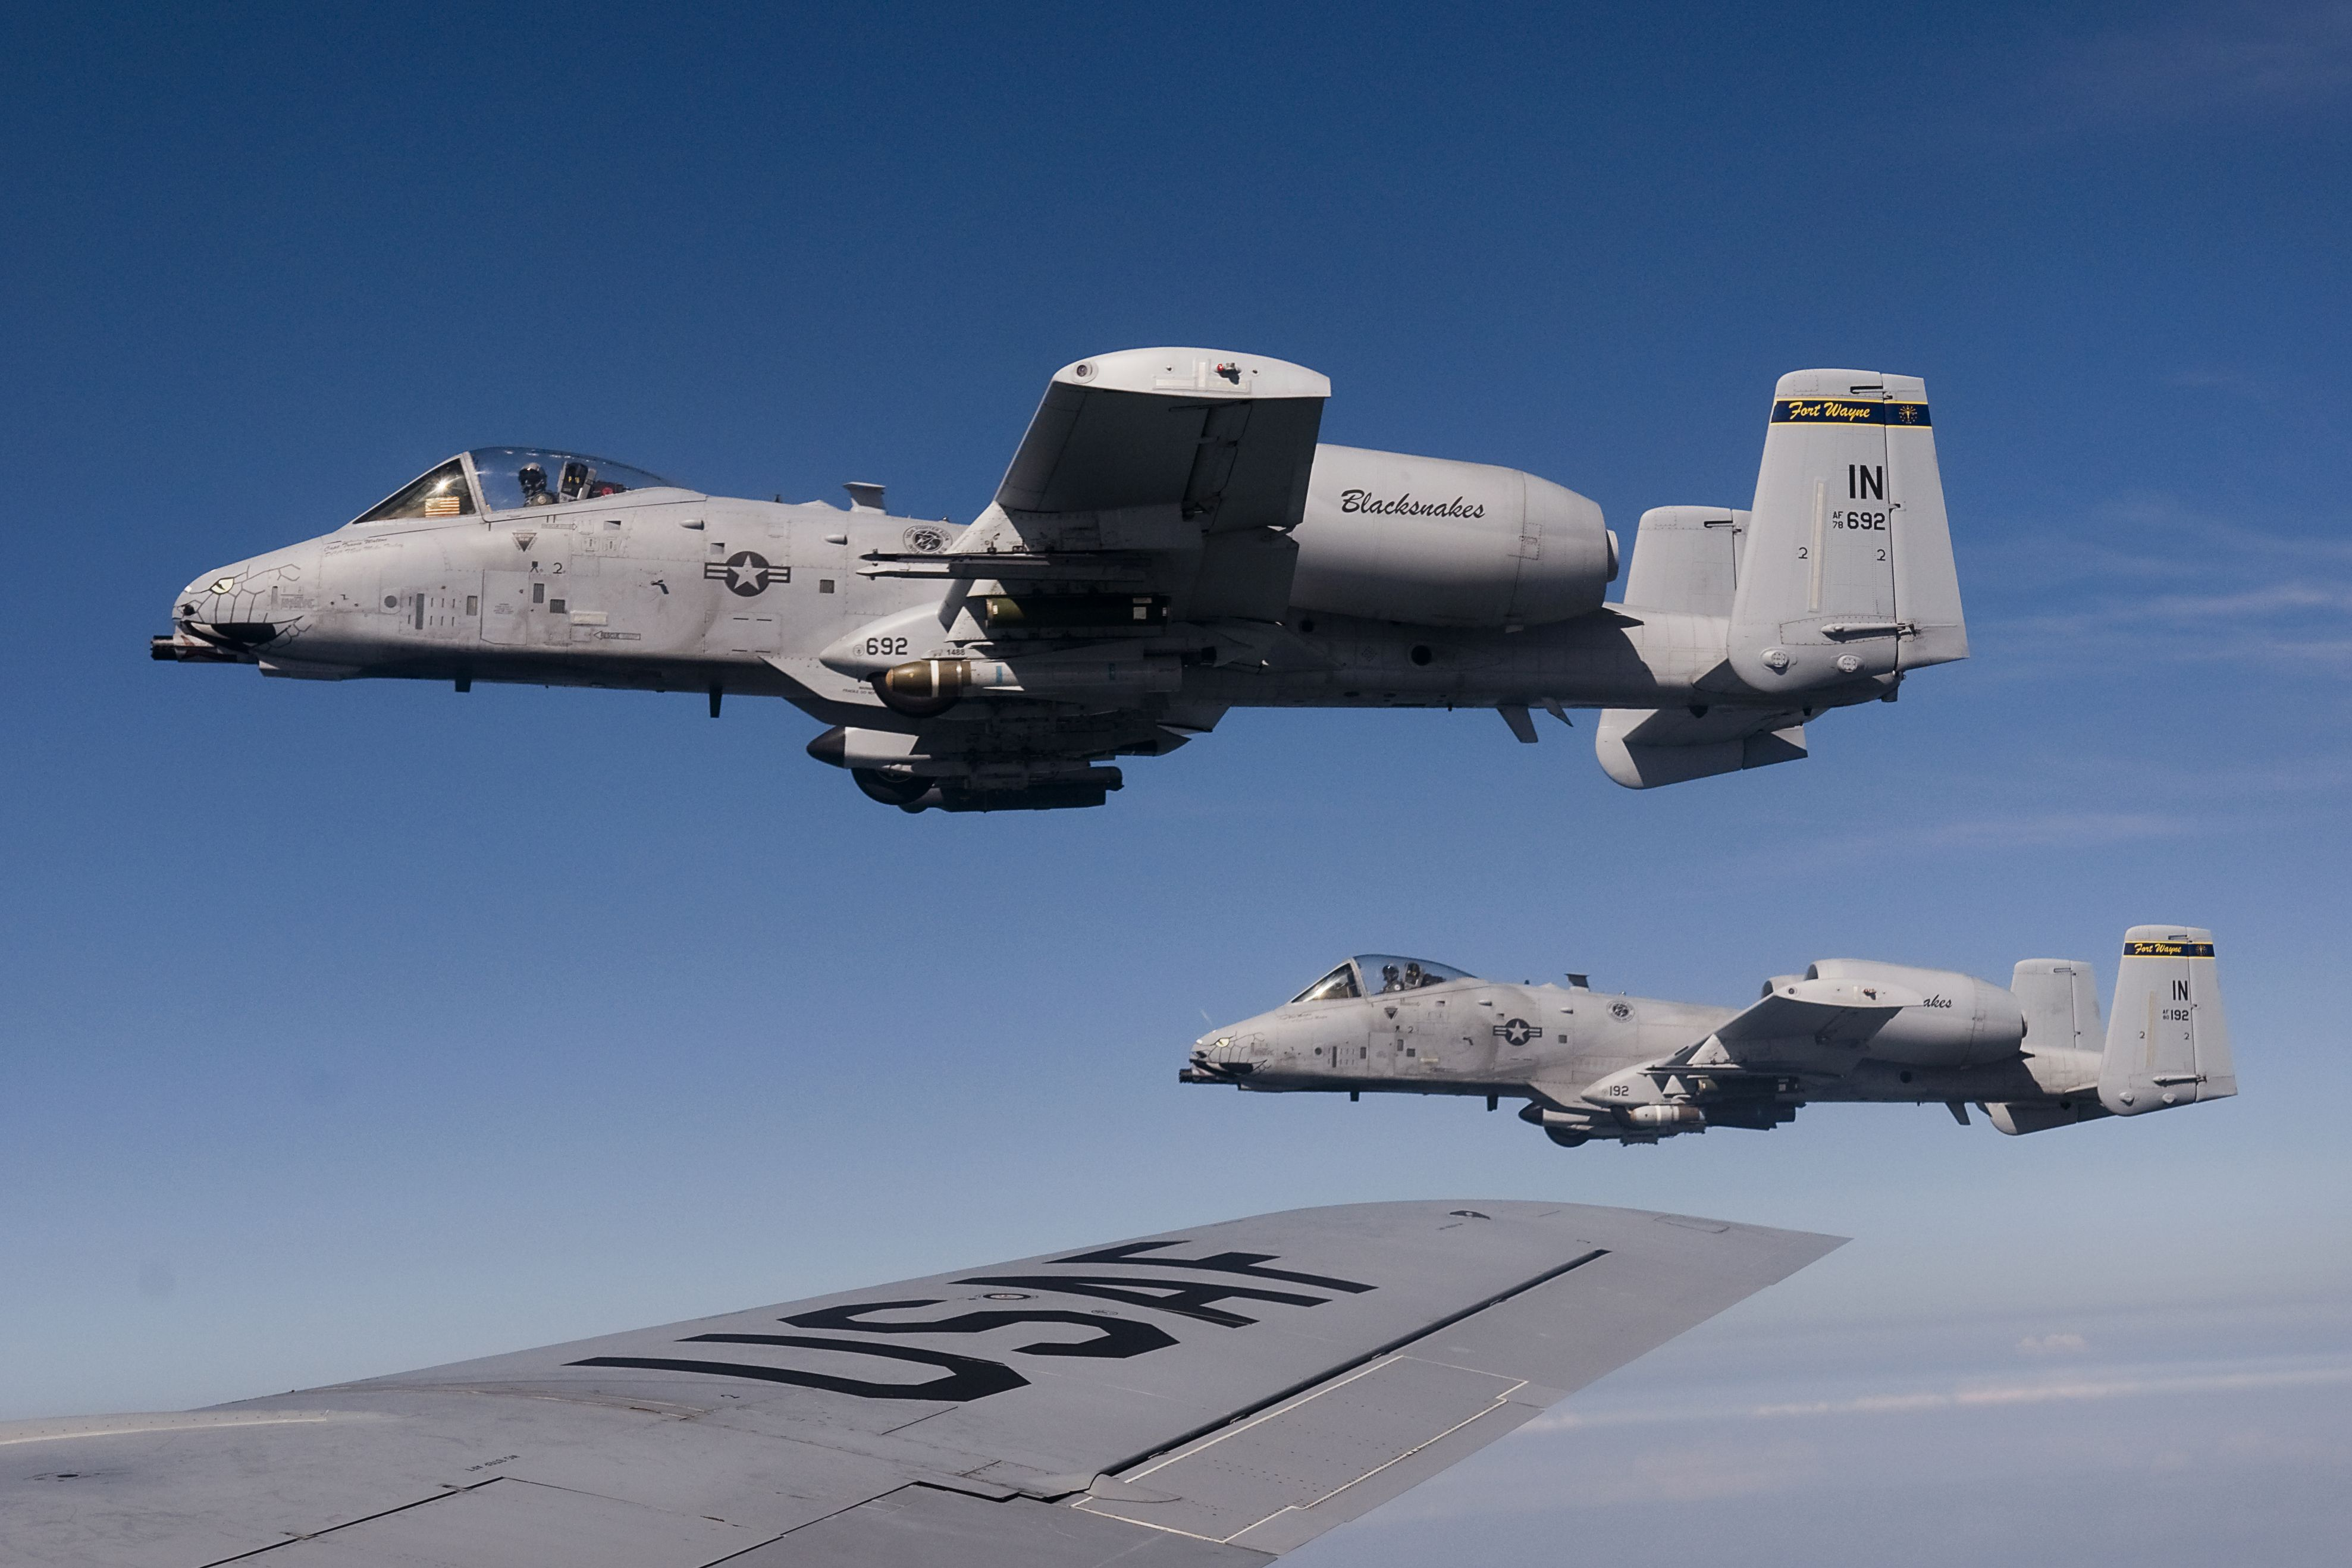 Two A10 Thunderbolt IIs from Air National Guard's 122nd